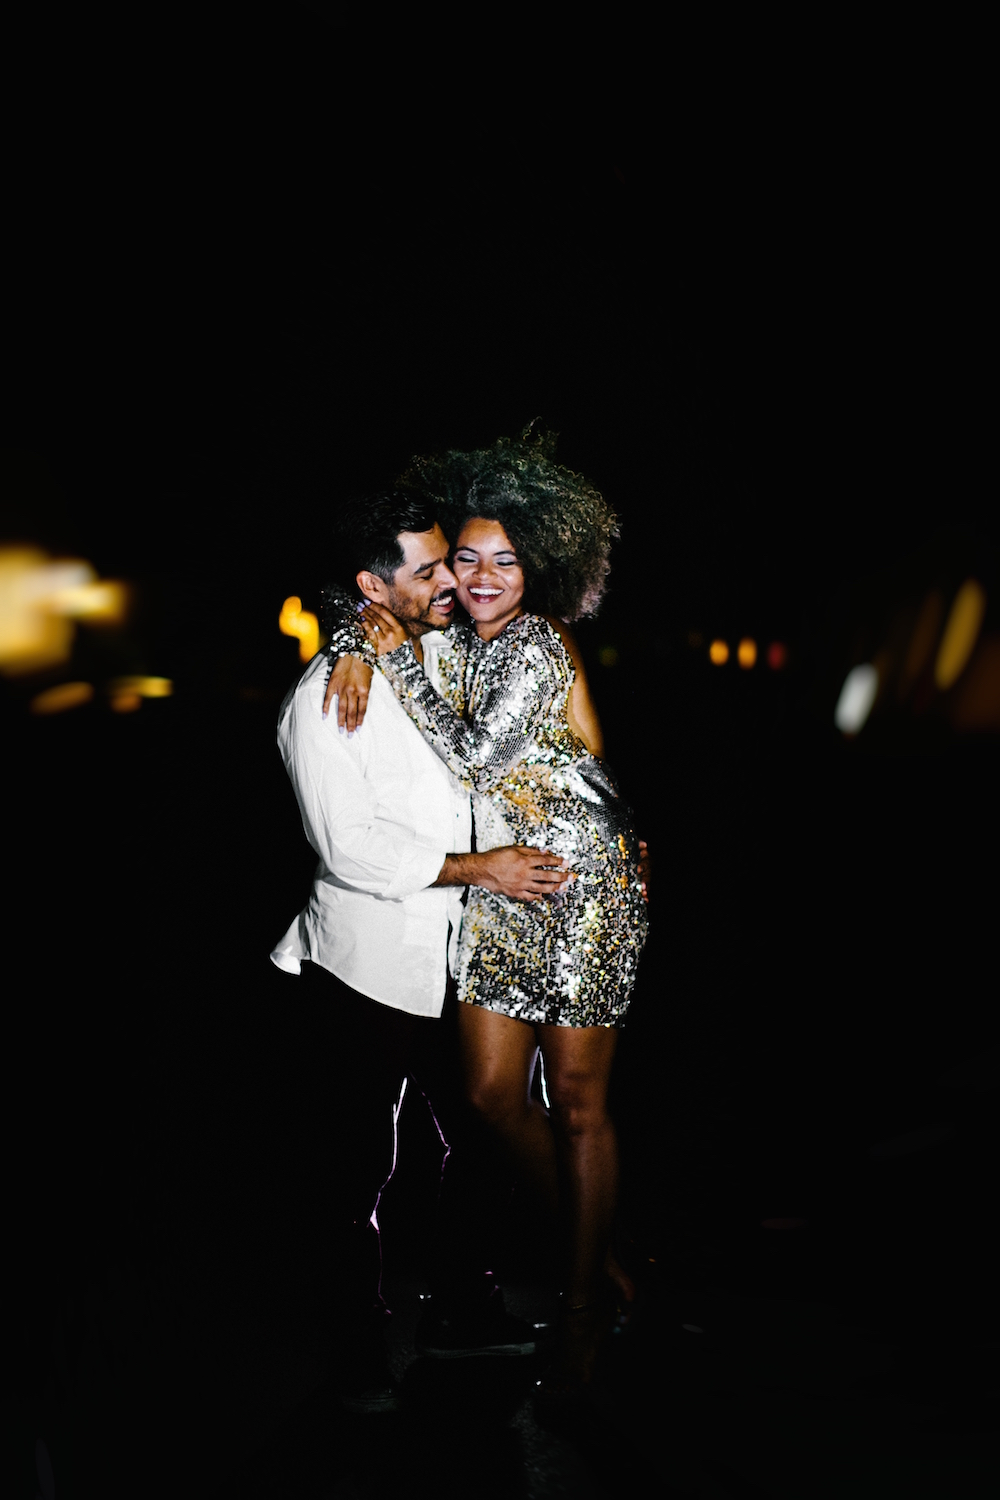 Engagement Photos at Night in Sequined Dress